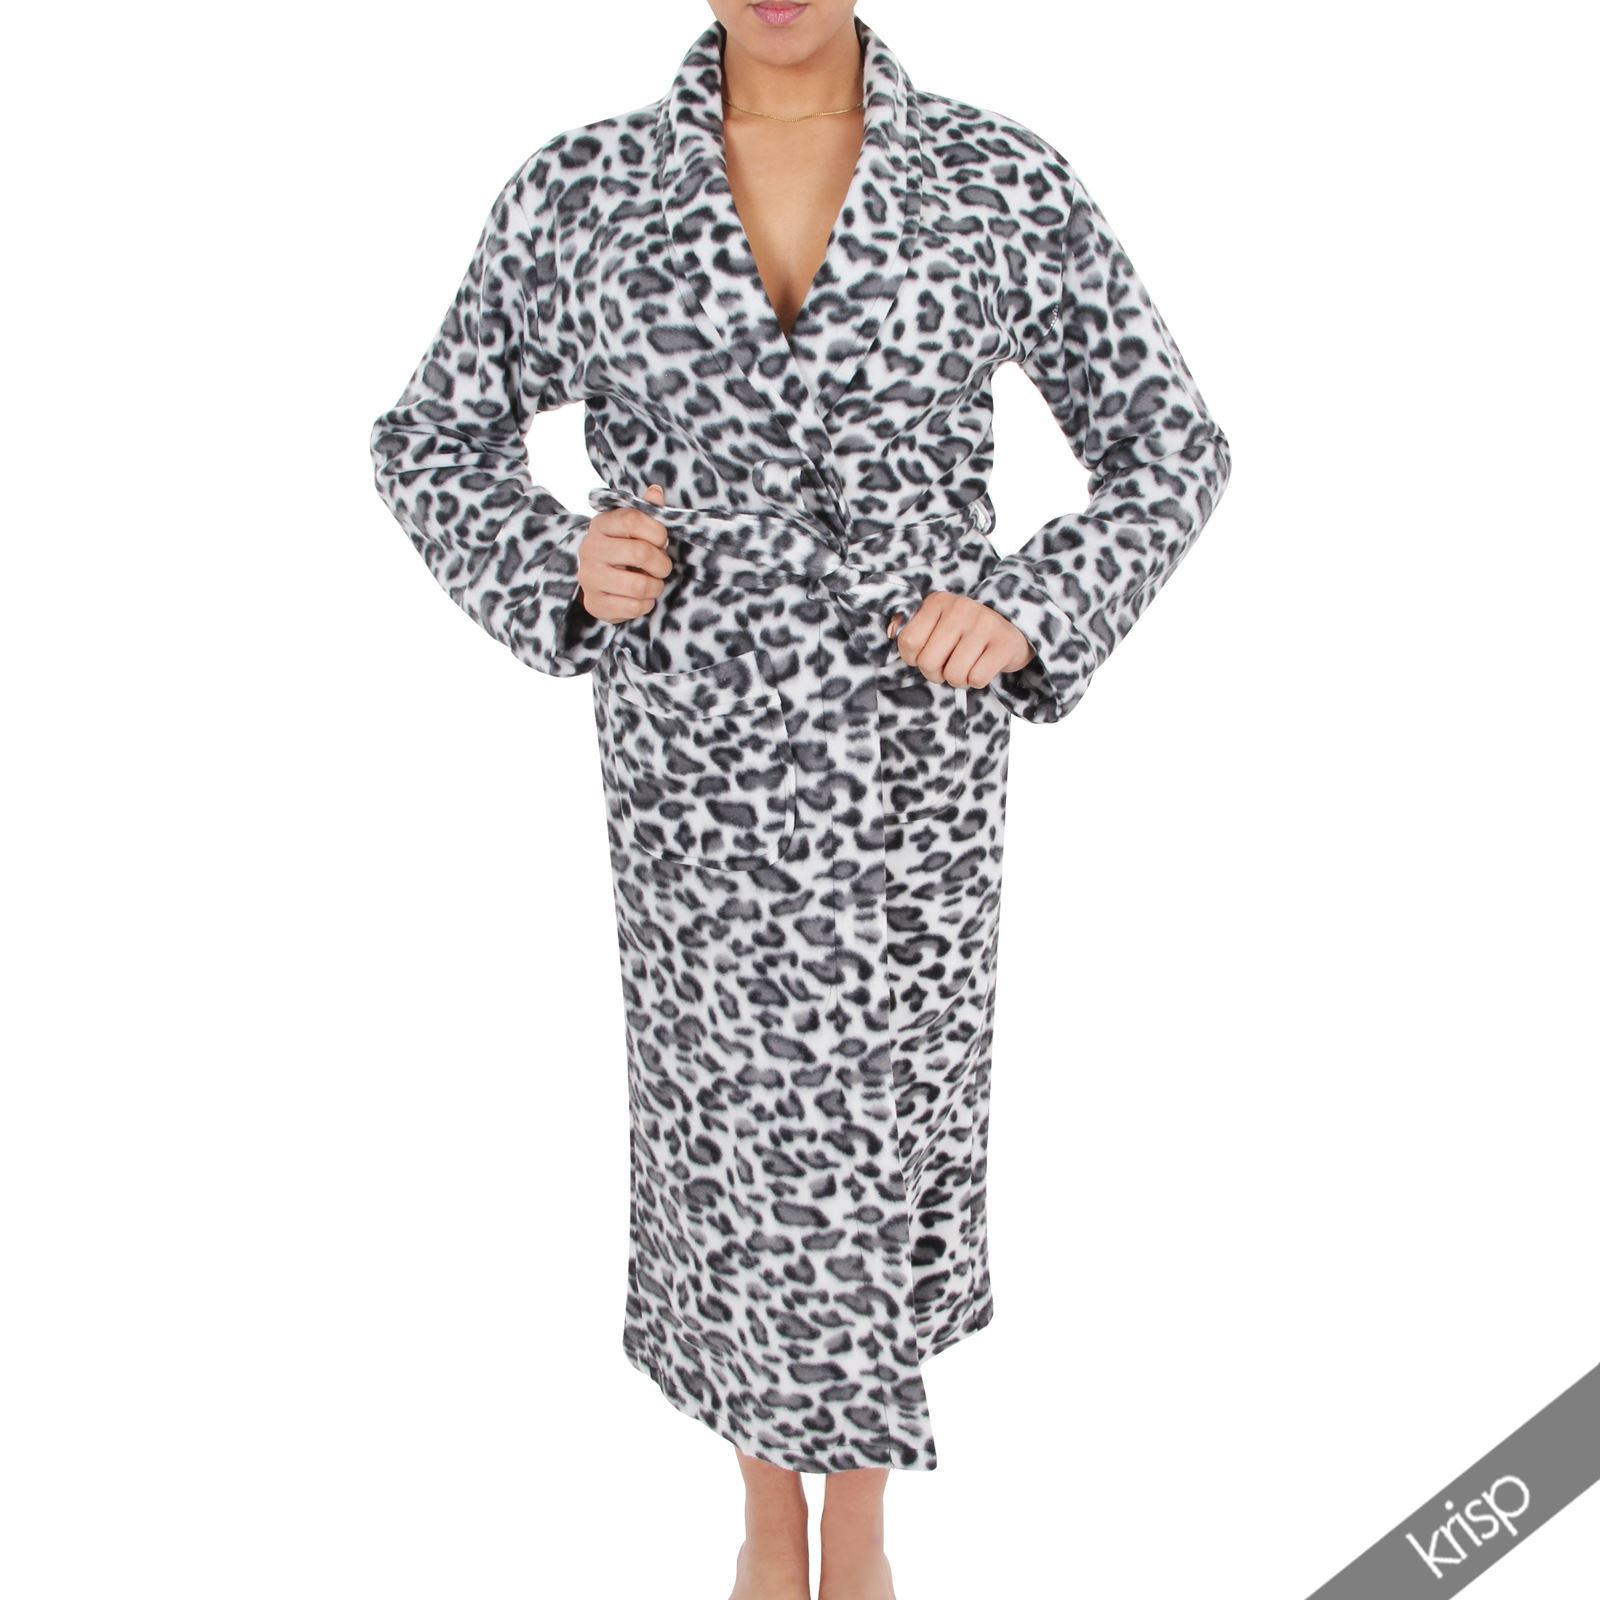 womens soft fleece leopard print robe dressing gown. Black Bedroom Furniture Sets. Home Design Ideas